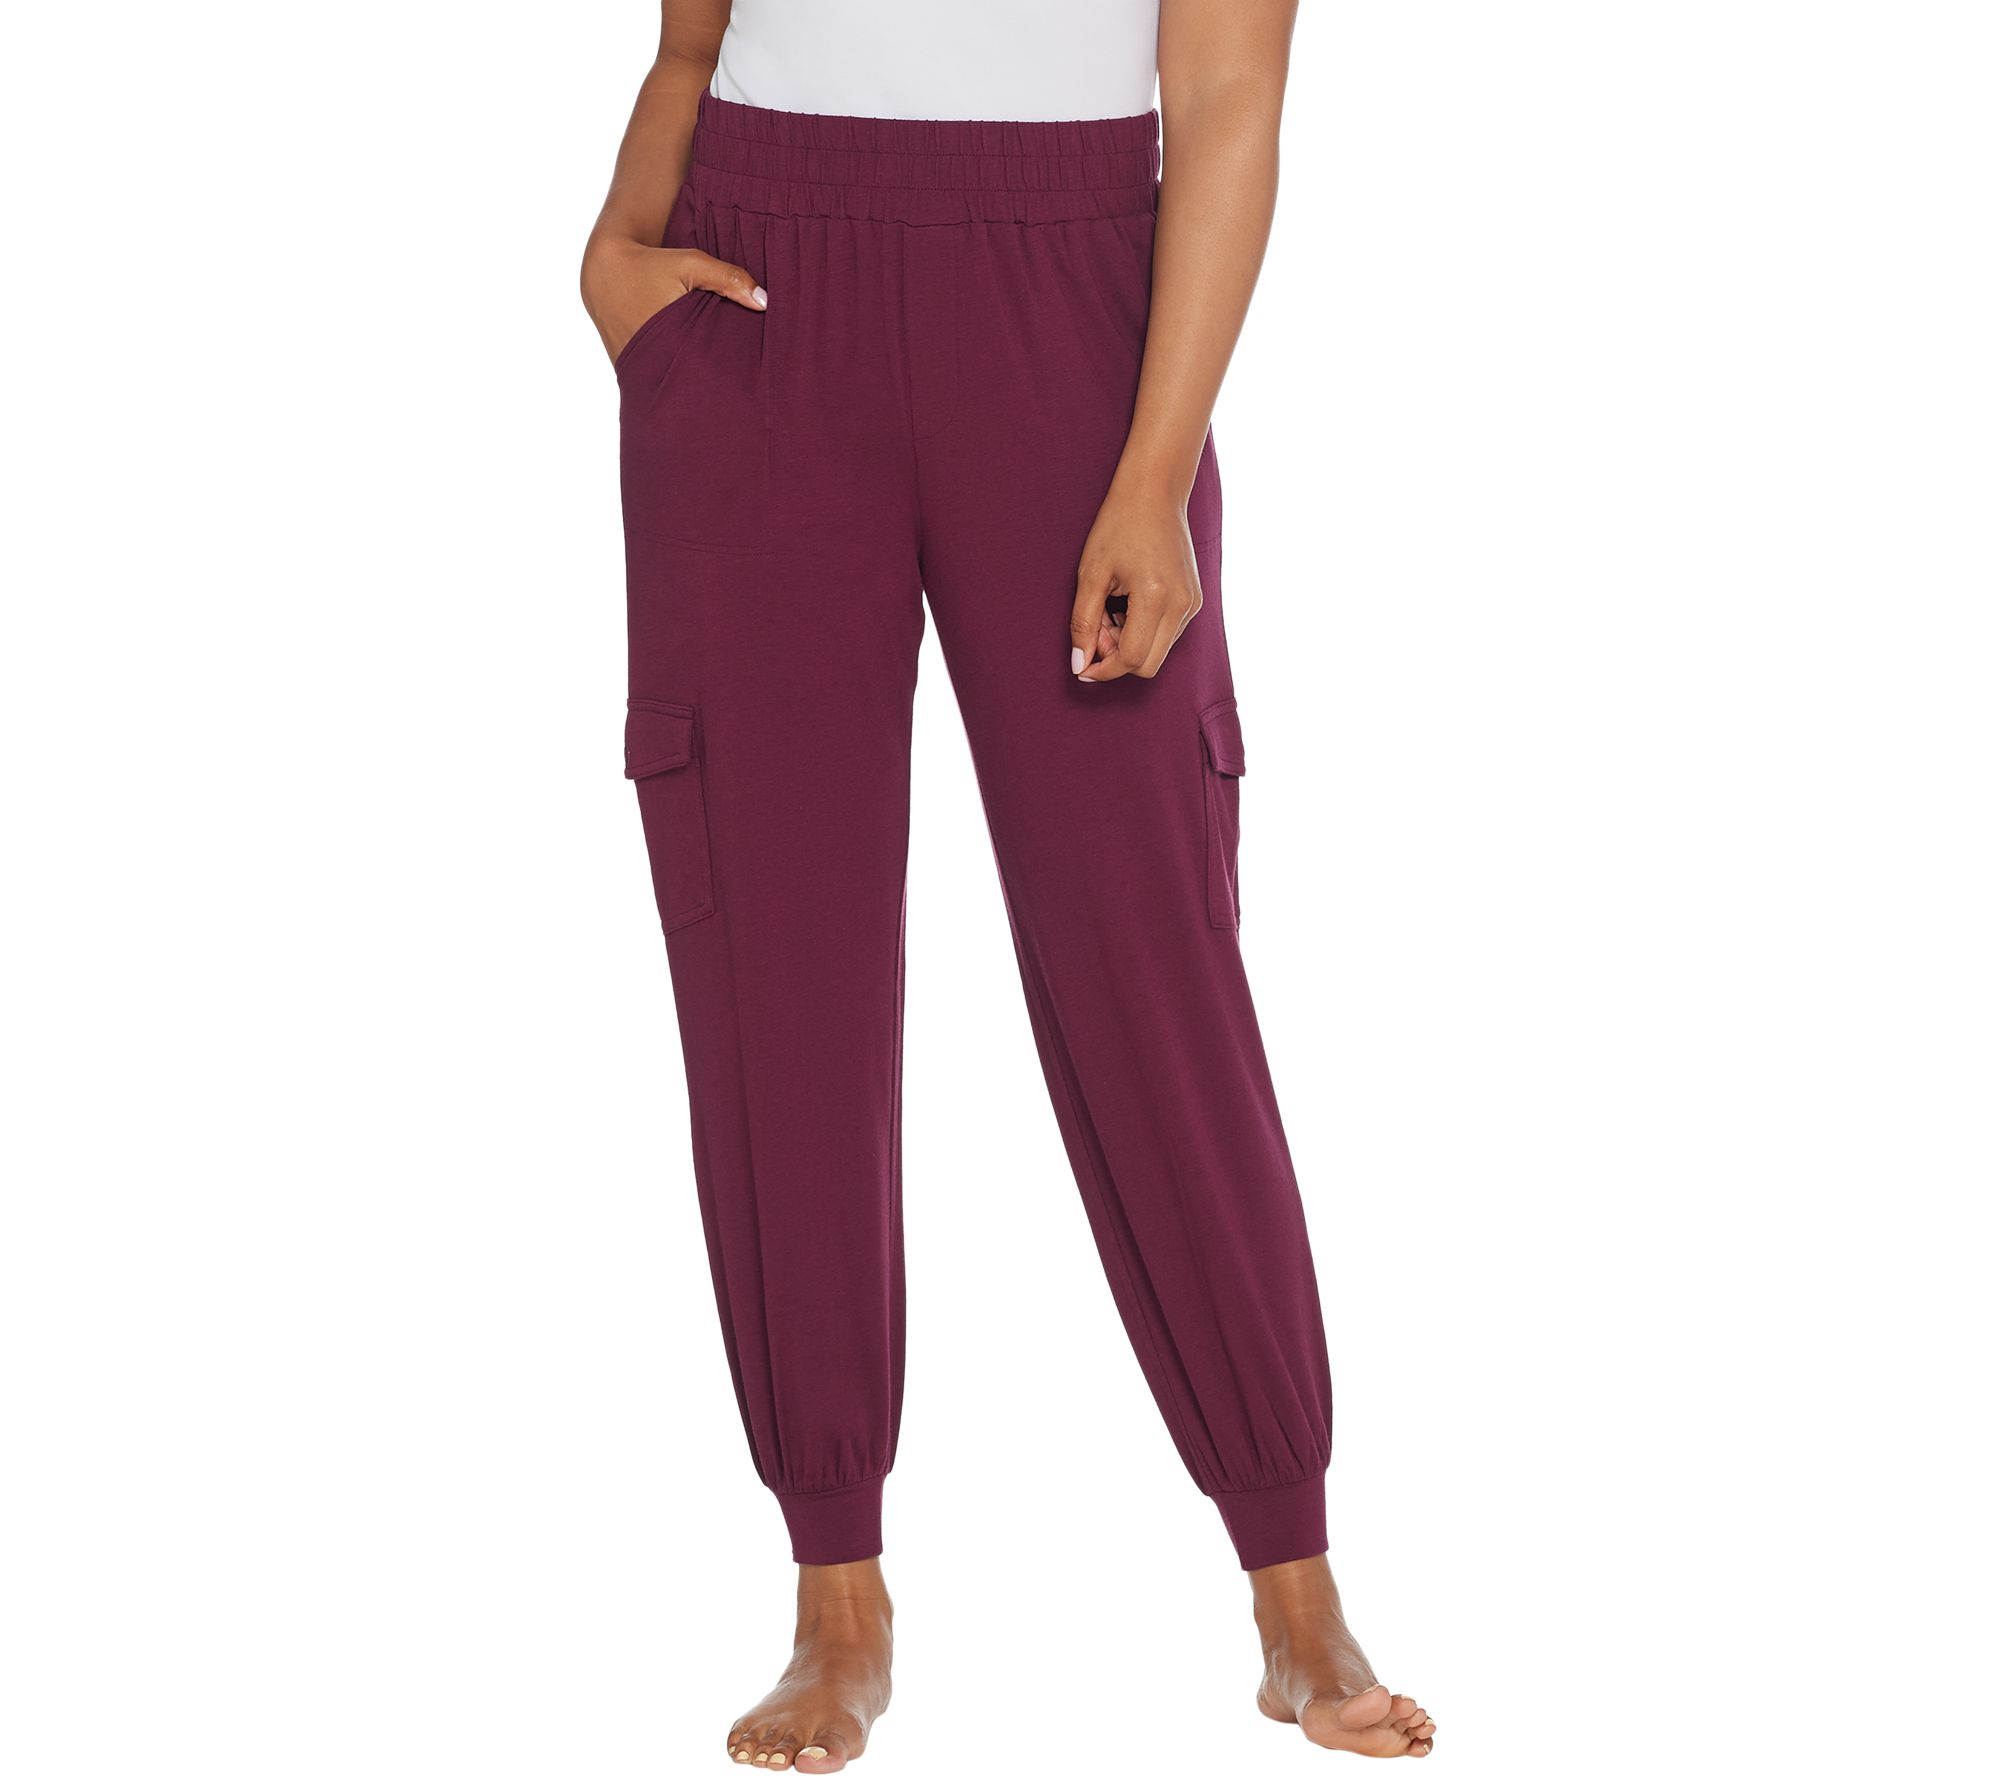 191da830c8964 AnyBody Loungewear Tall Cozy Knit Cargo Jogger Pants - Page 1 — QVC.com